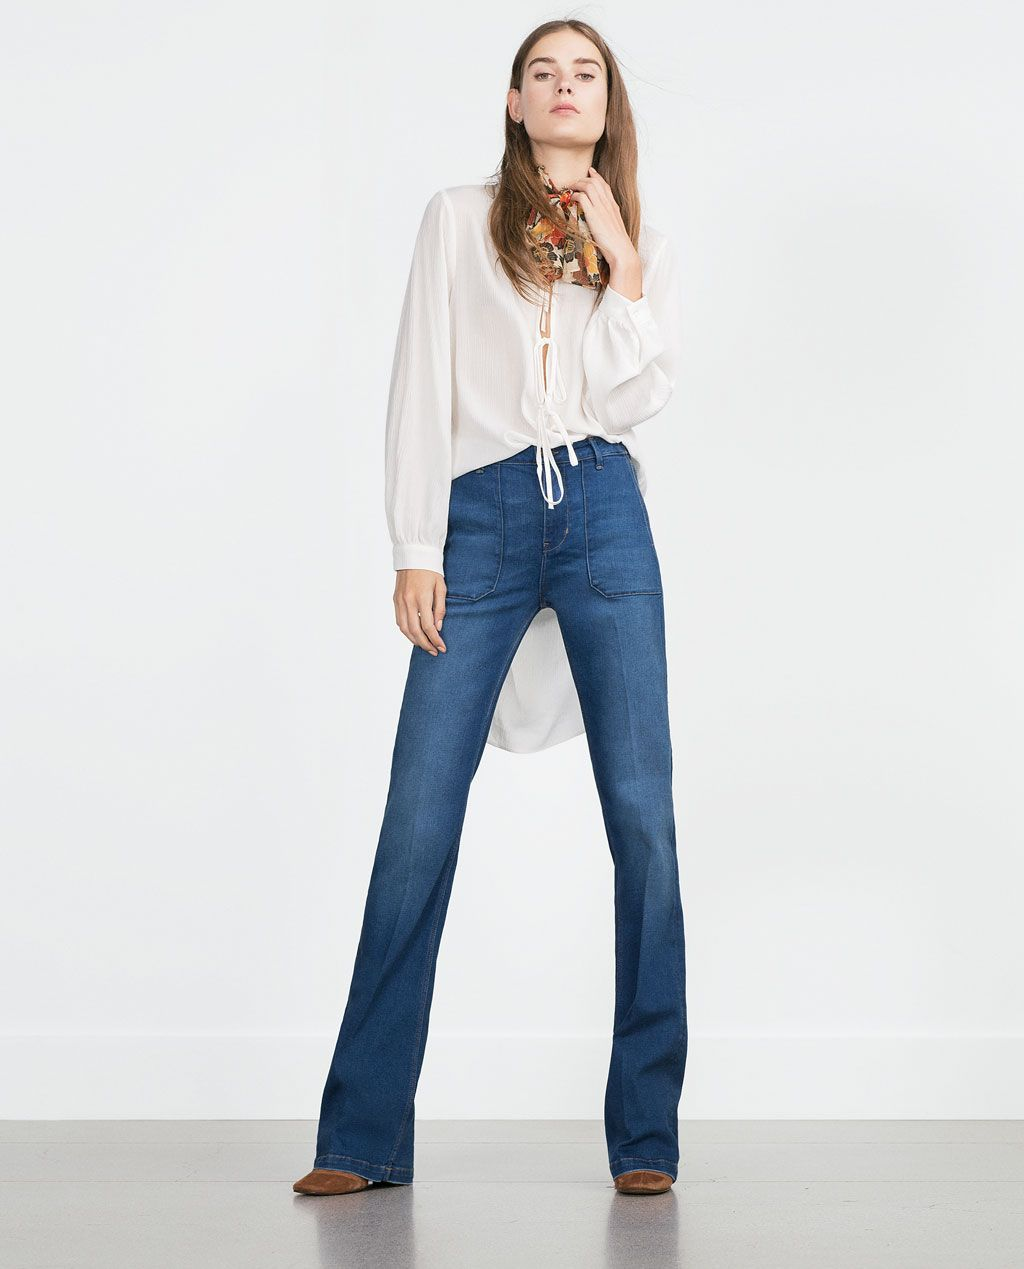 ff17ab3e90 FLARED JEANS-New this week-Woman-COLLECTION AW15 | ZARA United ...